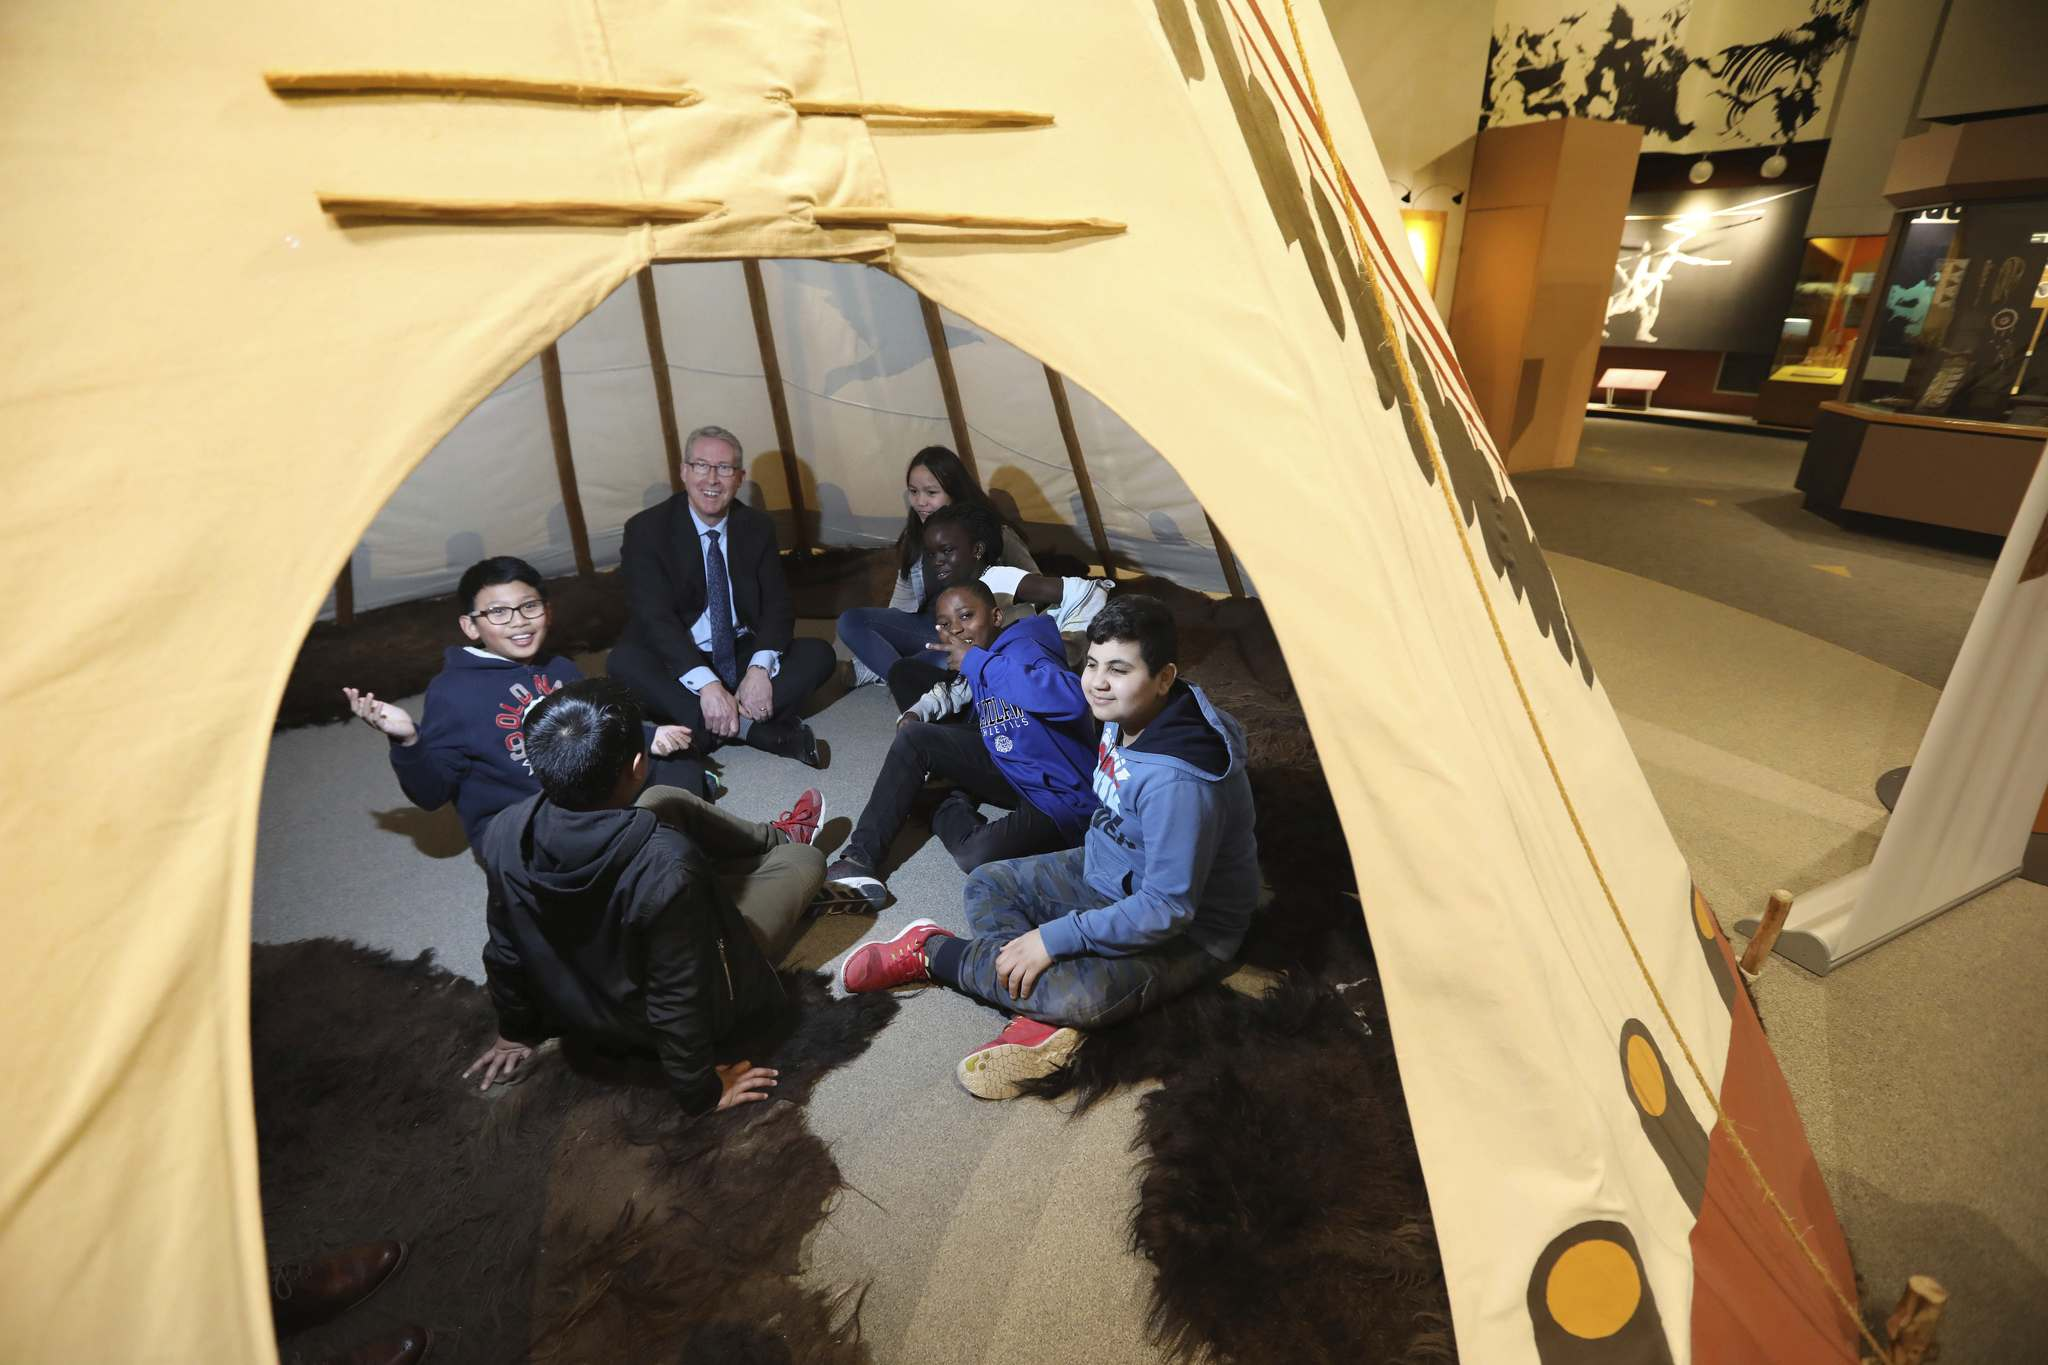 RUTH BONNEVILLE / WINNIPEG FREE PRESS</p><p>Canada Life CEO Paul Mahon chats with Grade 5 and 6 students from Victoria Albert School Wednesday in a teepee at the Manitoba Museum.</p>